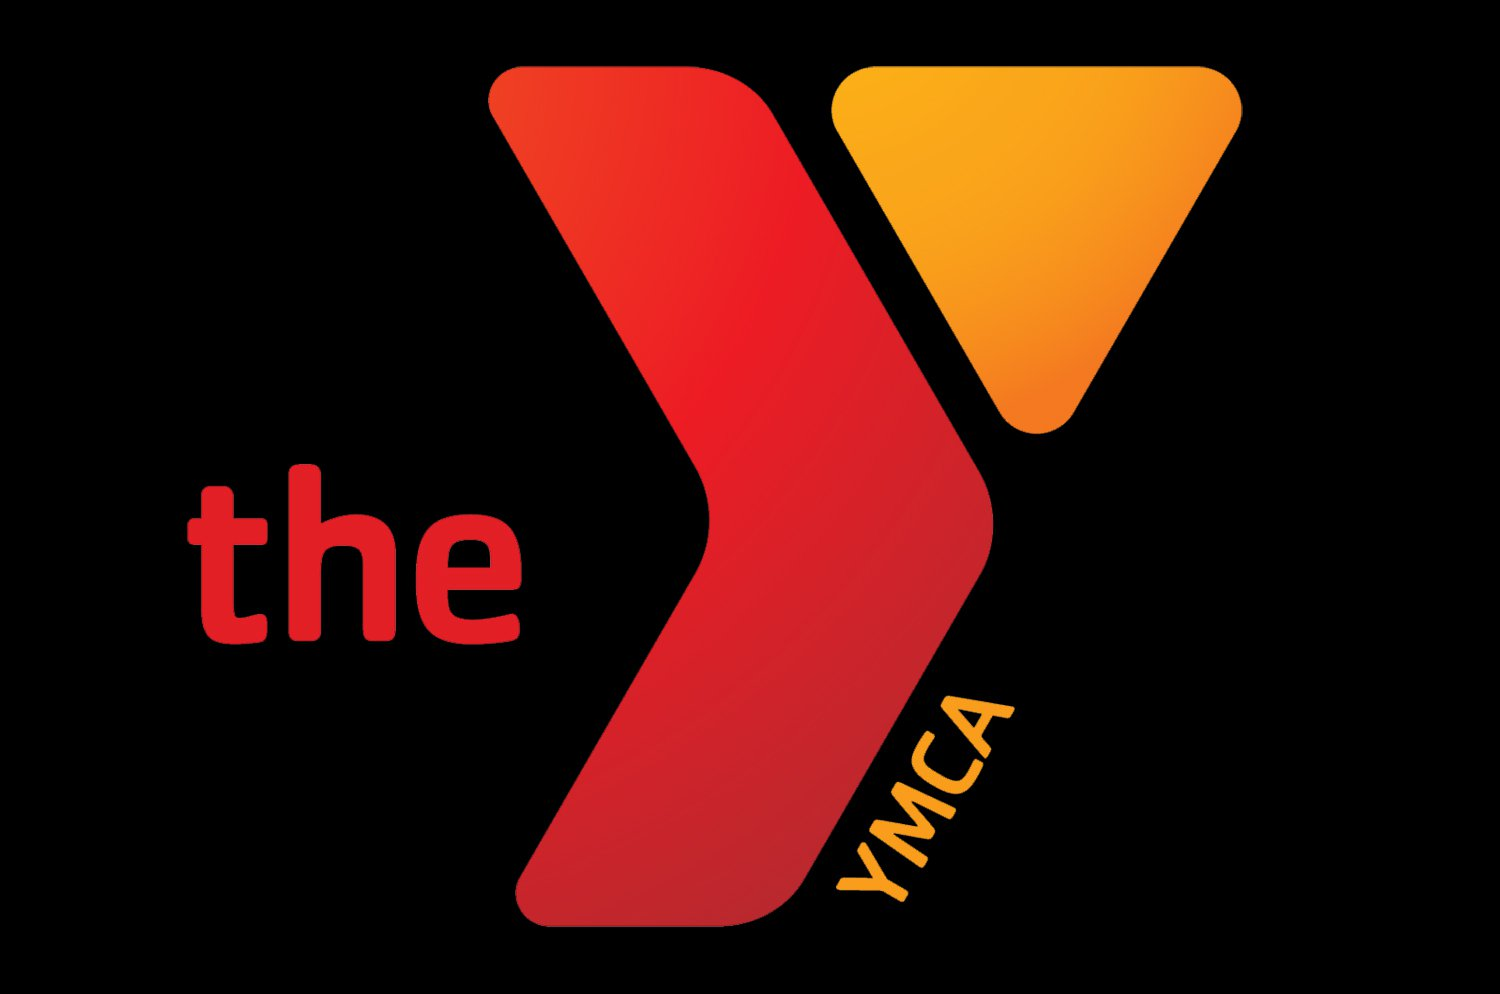 Ymca Logo Ymca Symbol Meaning History And Evolution